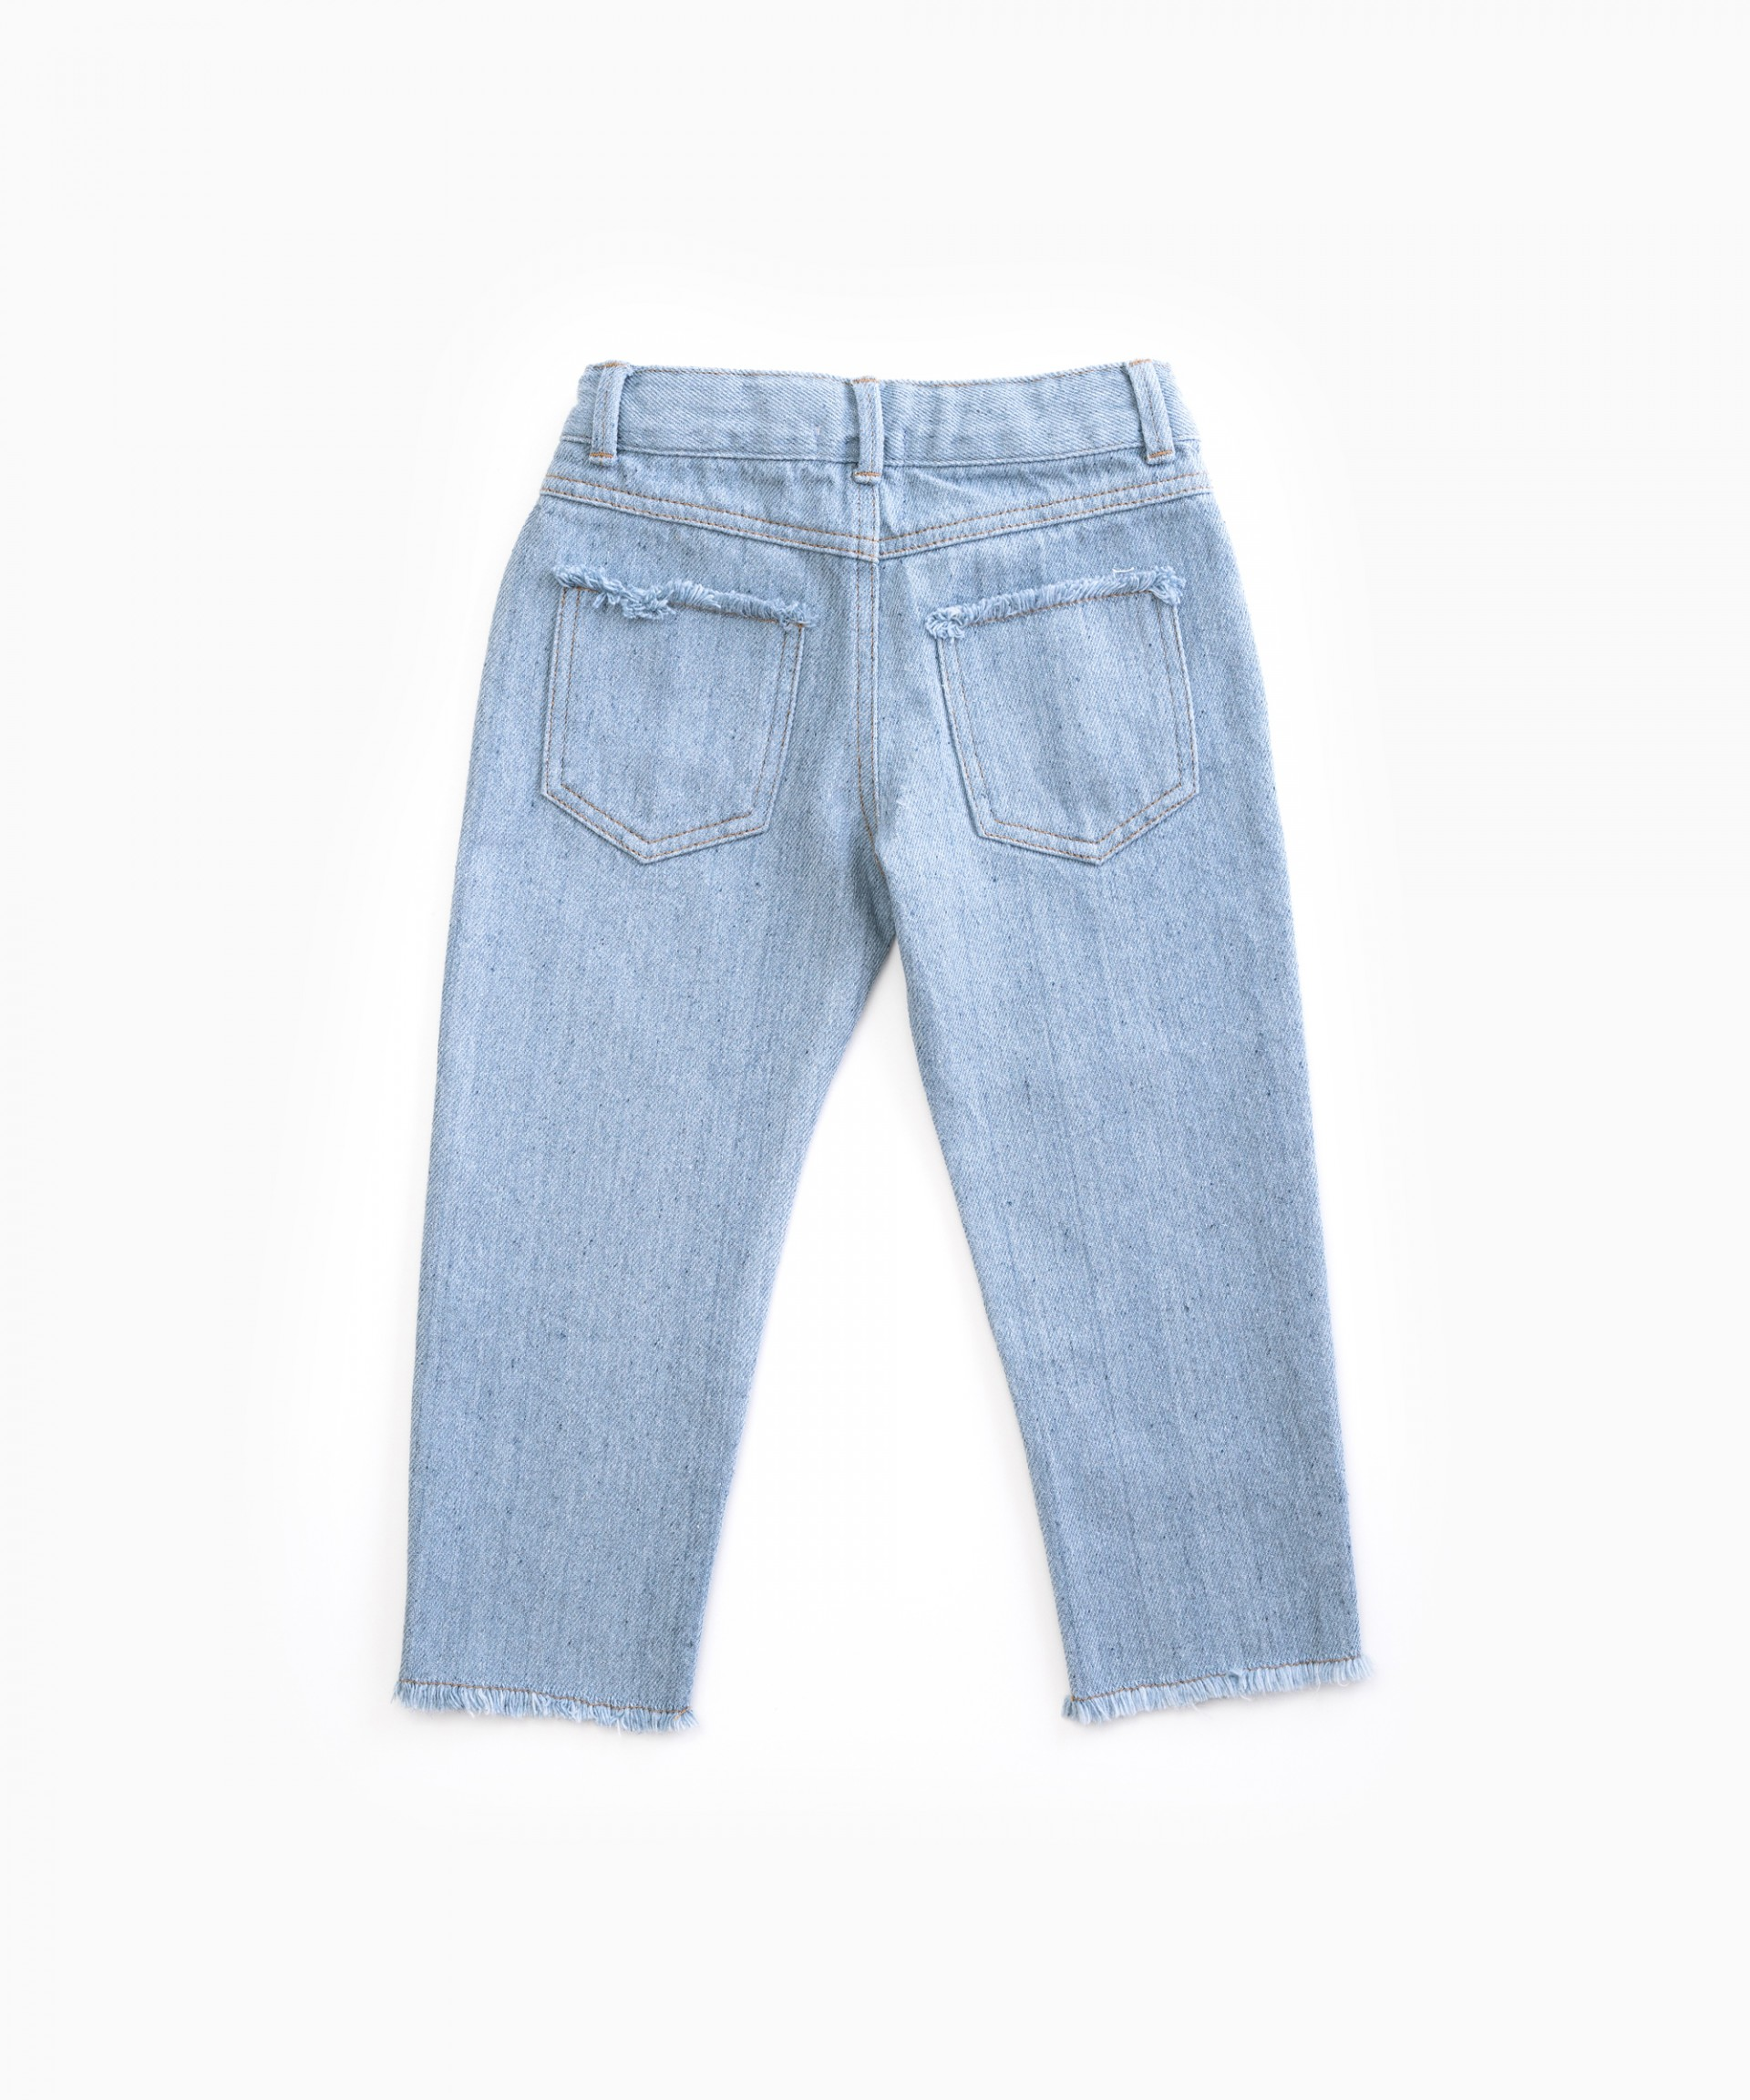 Denim trousers with pockets | Woodwork